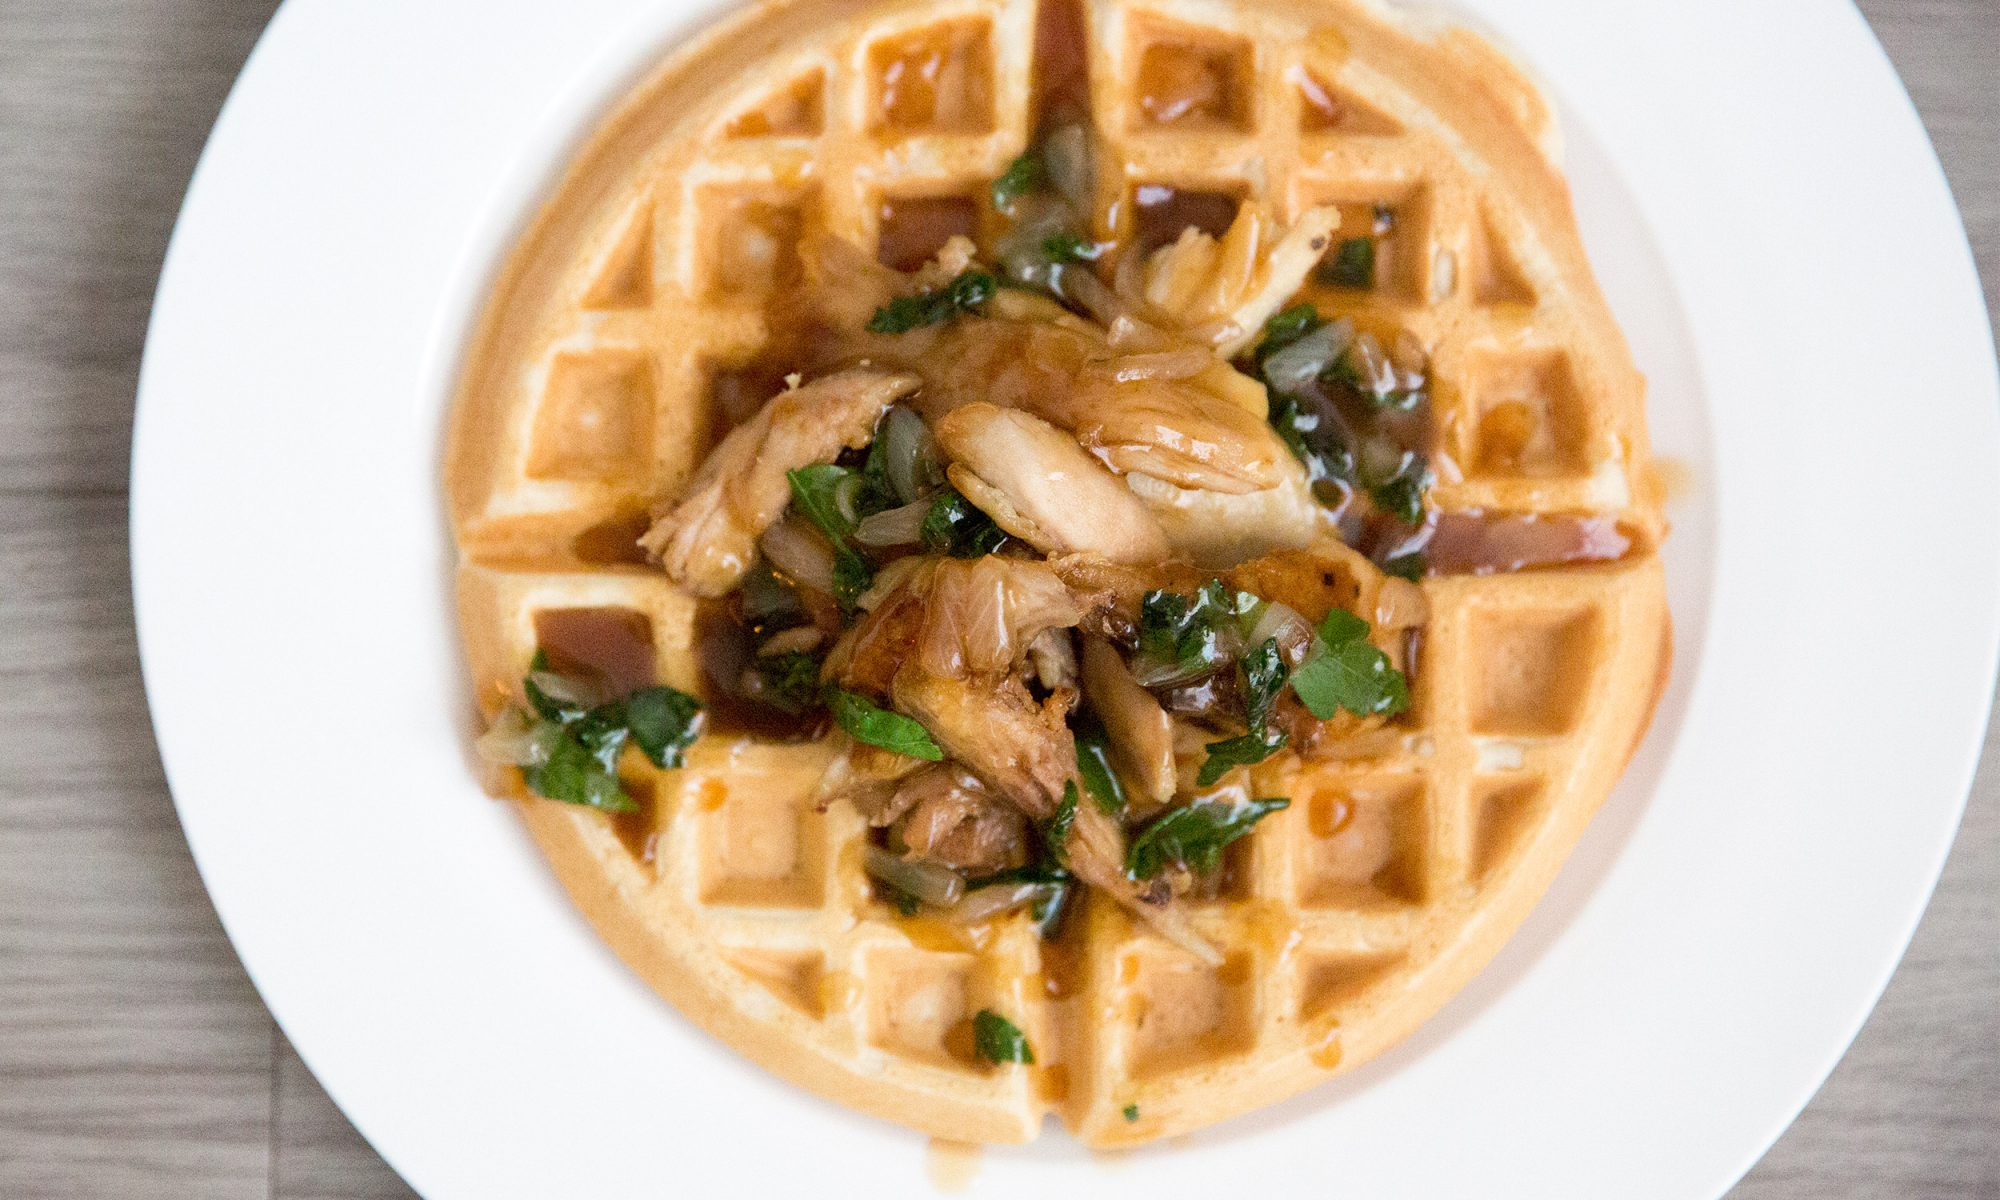 EC: Use Thanksgiving Leftovers to Make Fried Turkey and Waffles